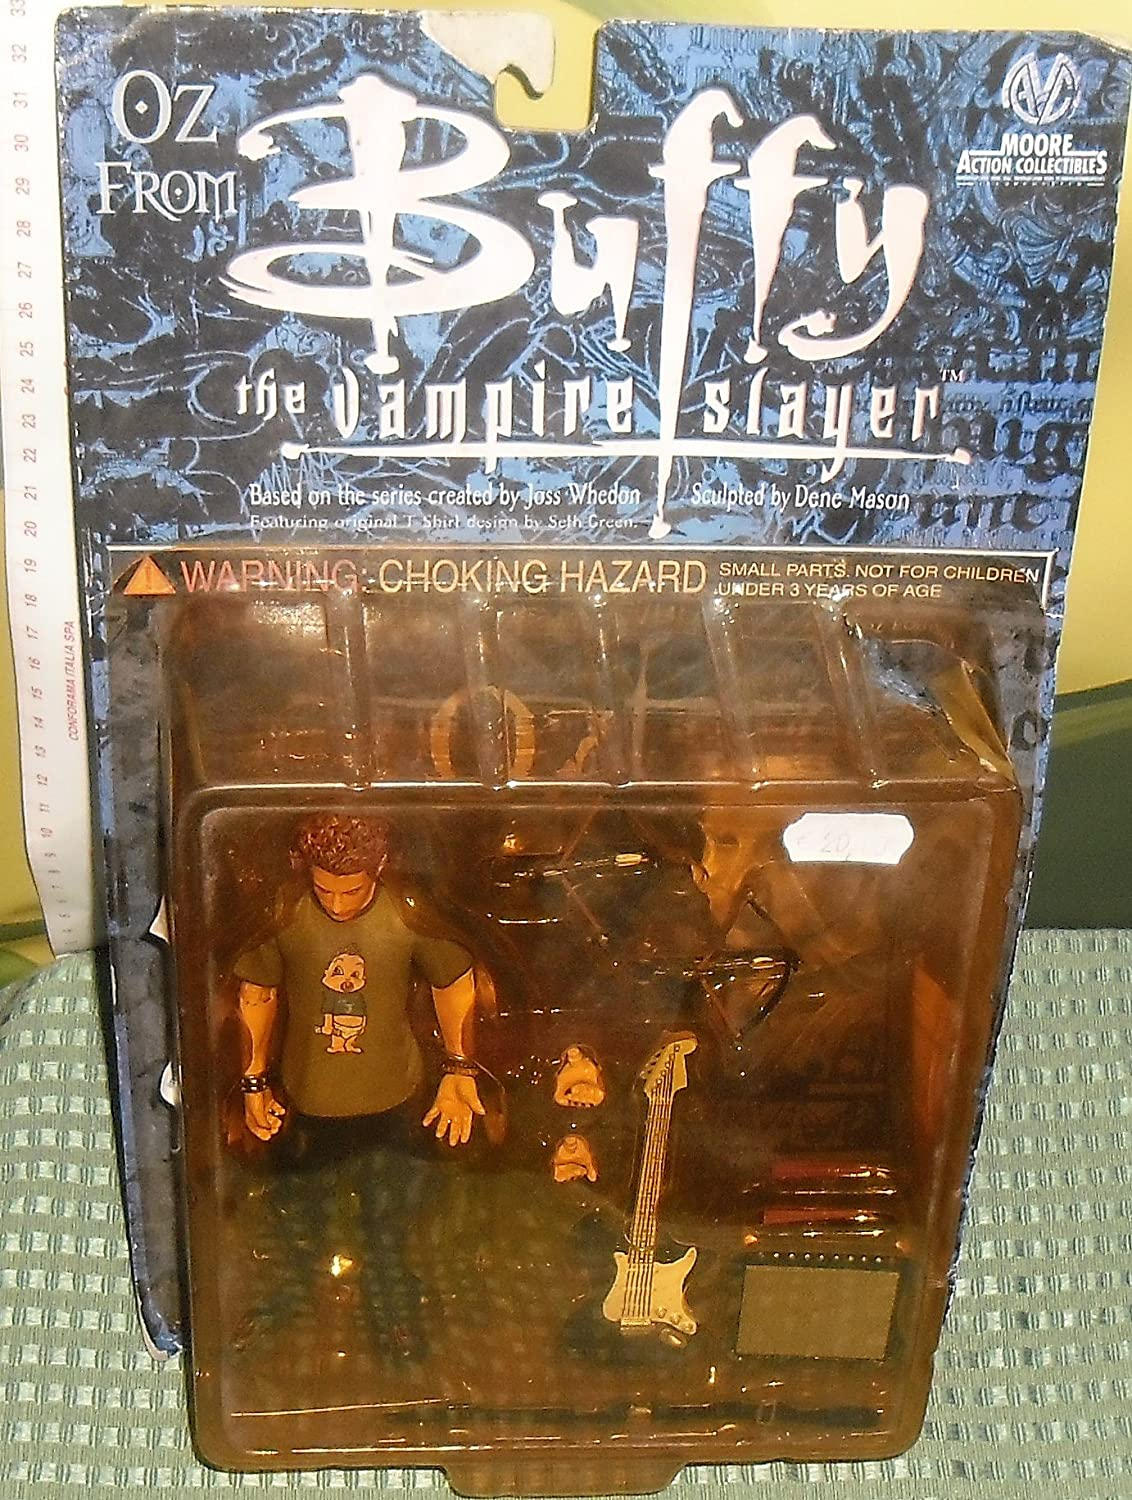 Buffy the Vampire Slayer - Werewolf OZ Previews Exclusive Action Figure by Buffy the Vampire Slayer